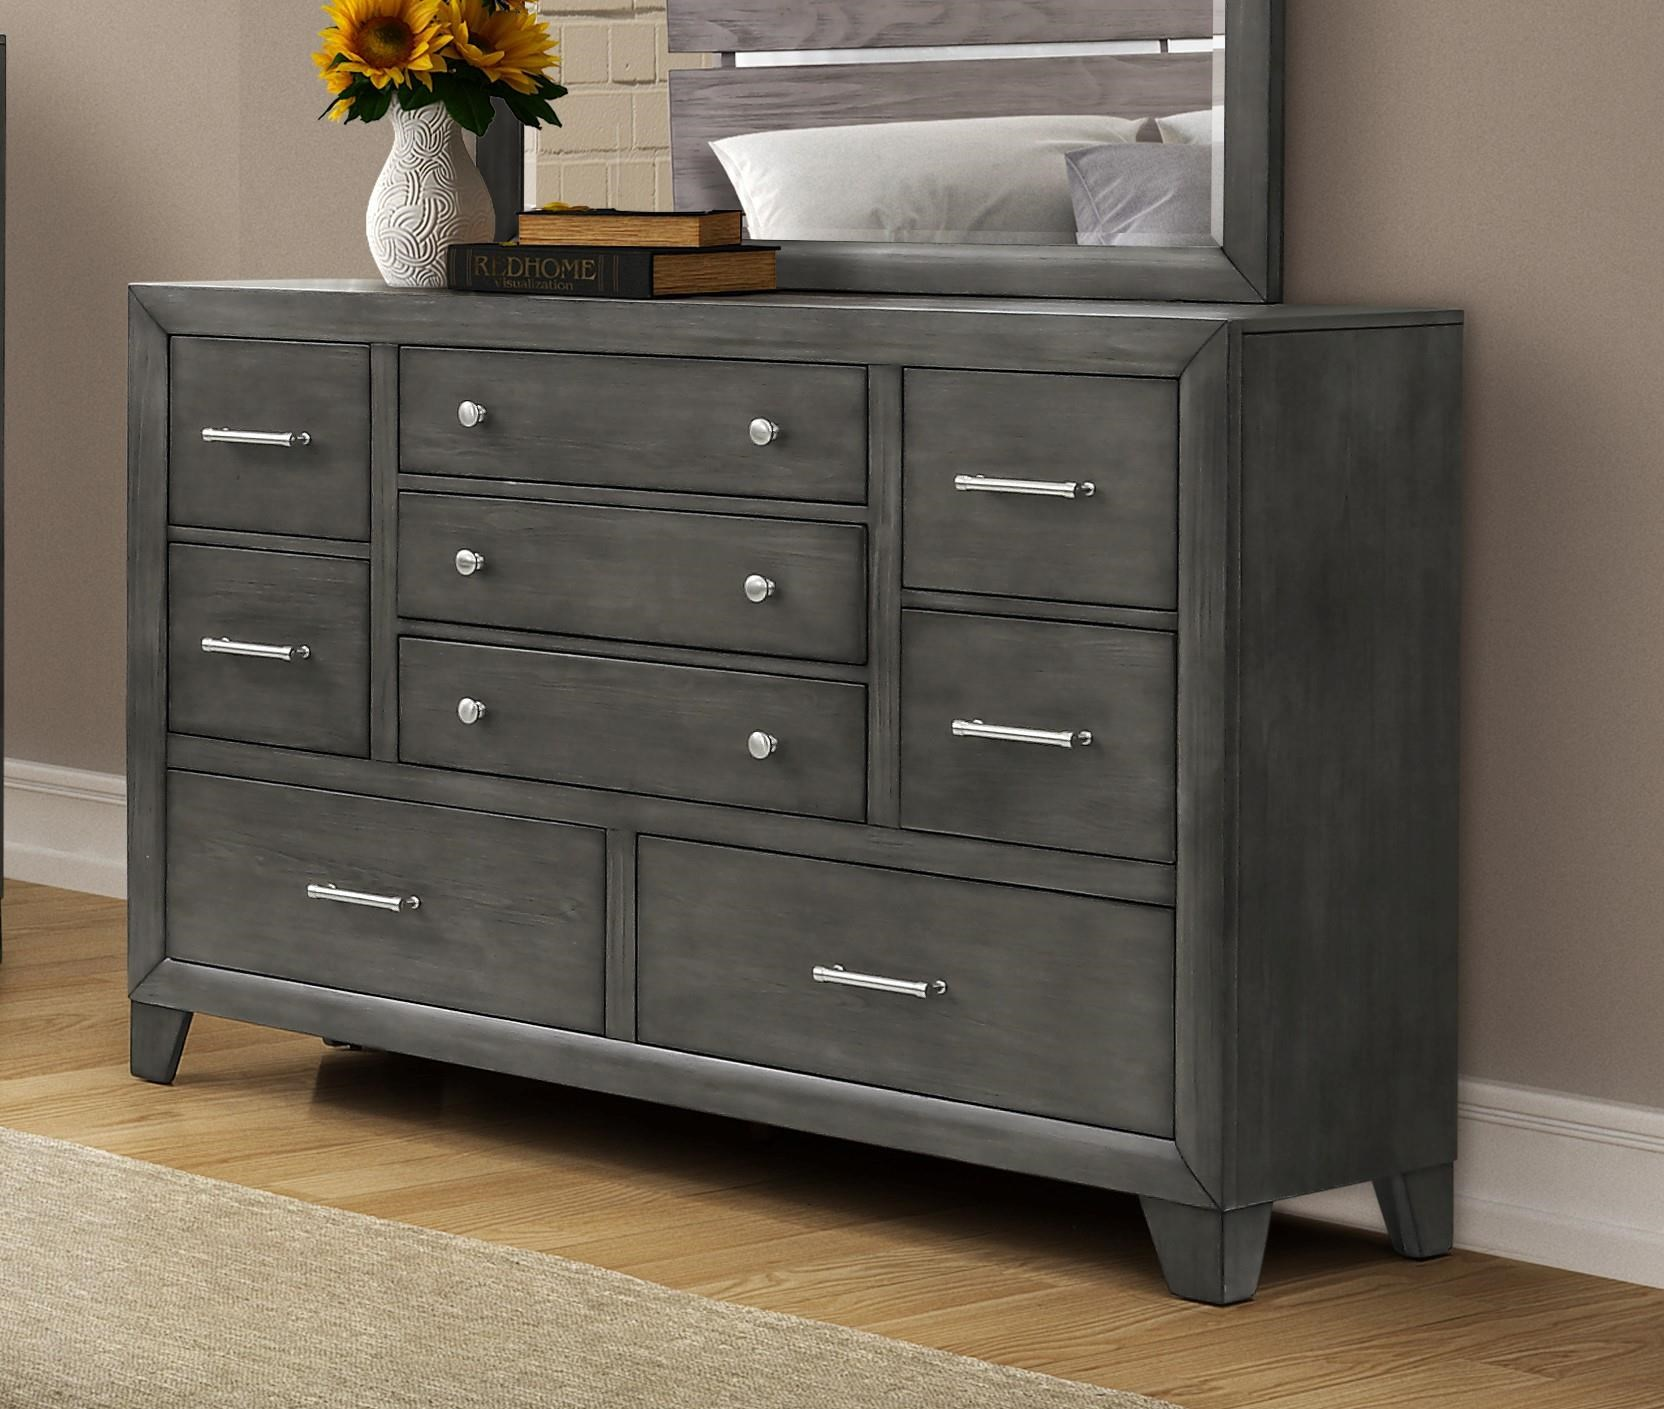 8130G 9 Drawer Dresser by Lifestyle at Furniture Fair - North Carolina